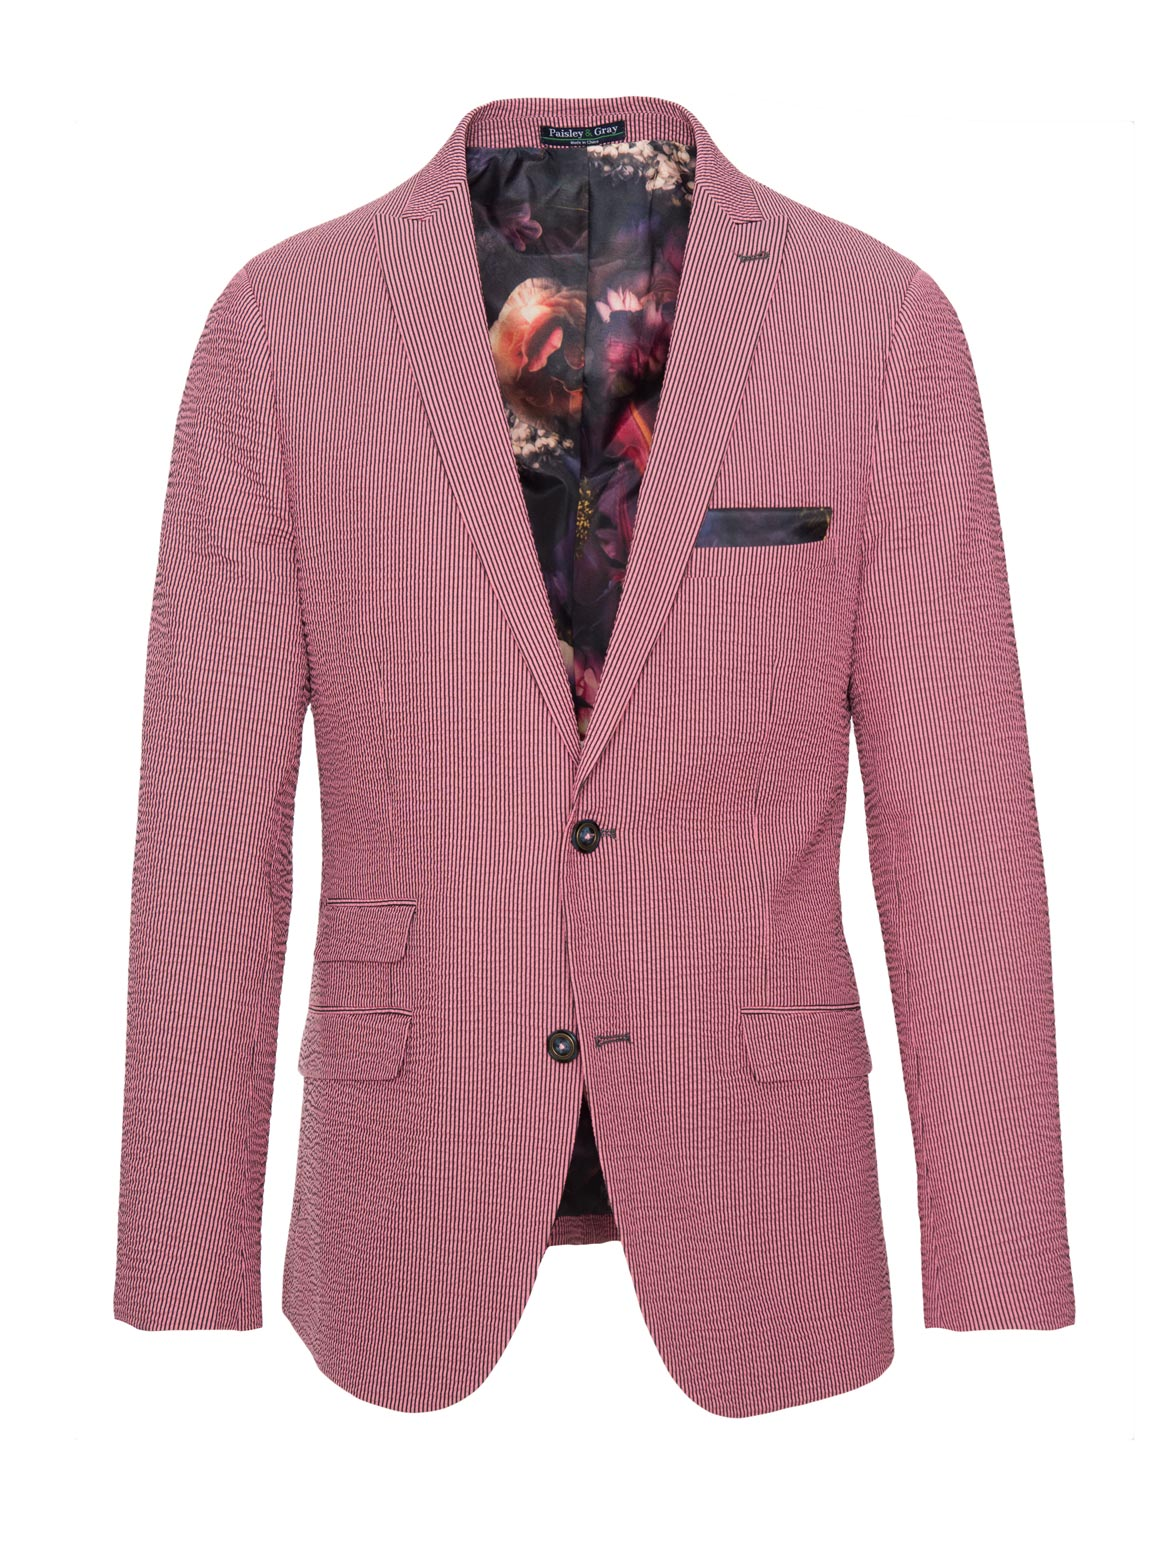 paisley & gray pink seersucker slim fit peak lapel suit jacket 2121J dramatic camo-rose lining and pocket square blue buttons flap pockets